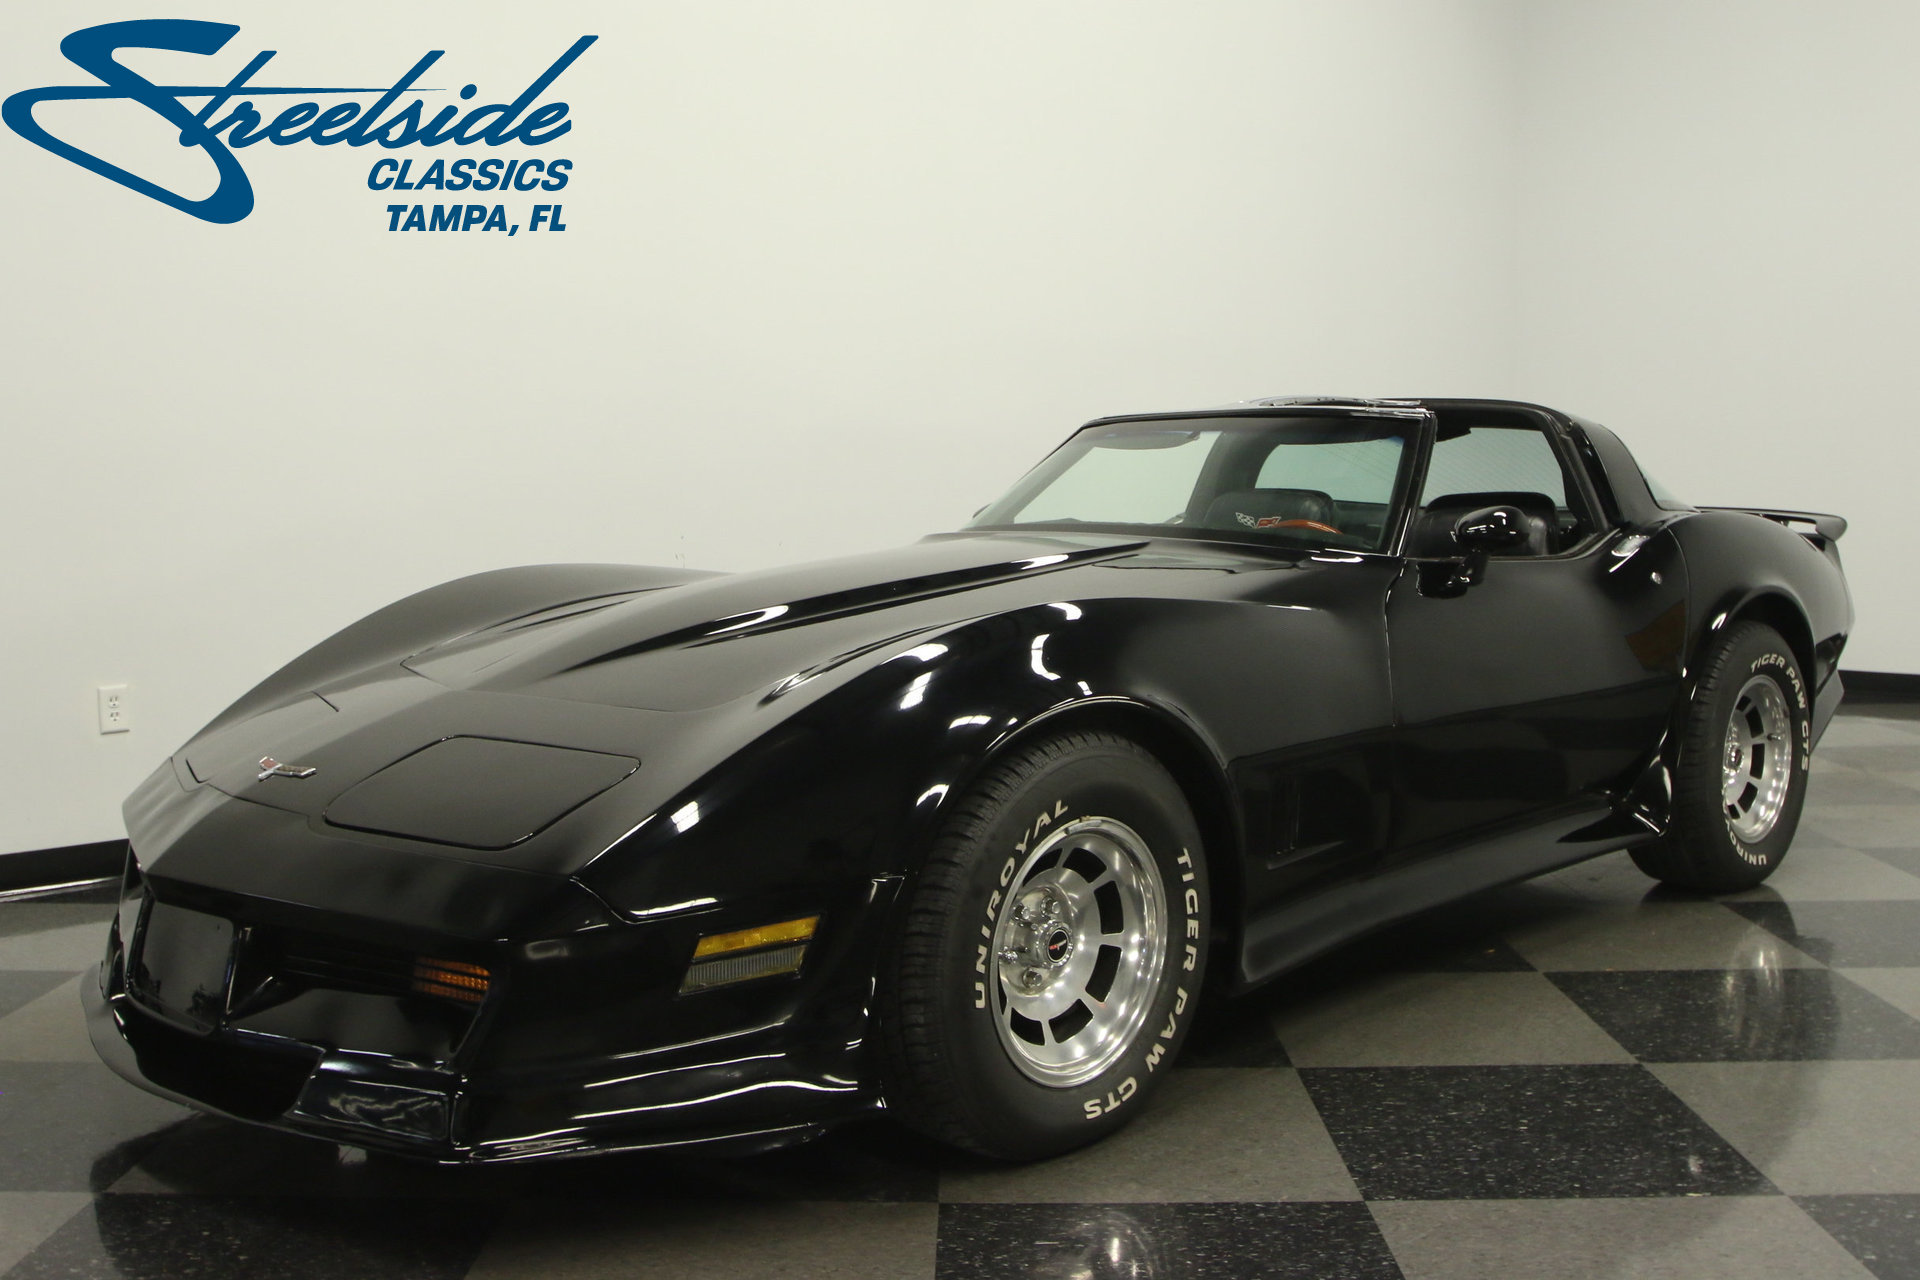 1980 chevrolet corvette streetside classics the nation 39 s trusted classic car consignment dealer. Black Bedroom Furniture Sets. Home Design Ideas